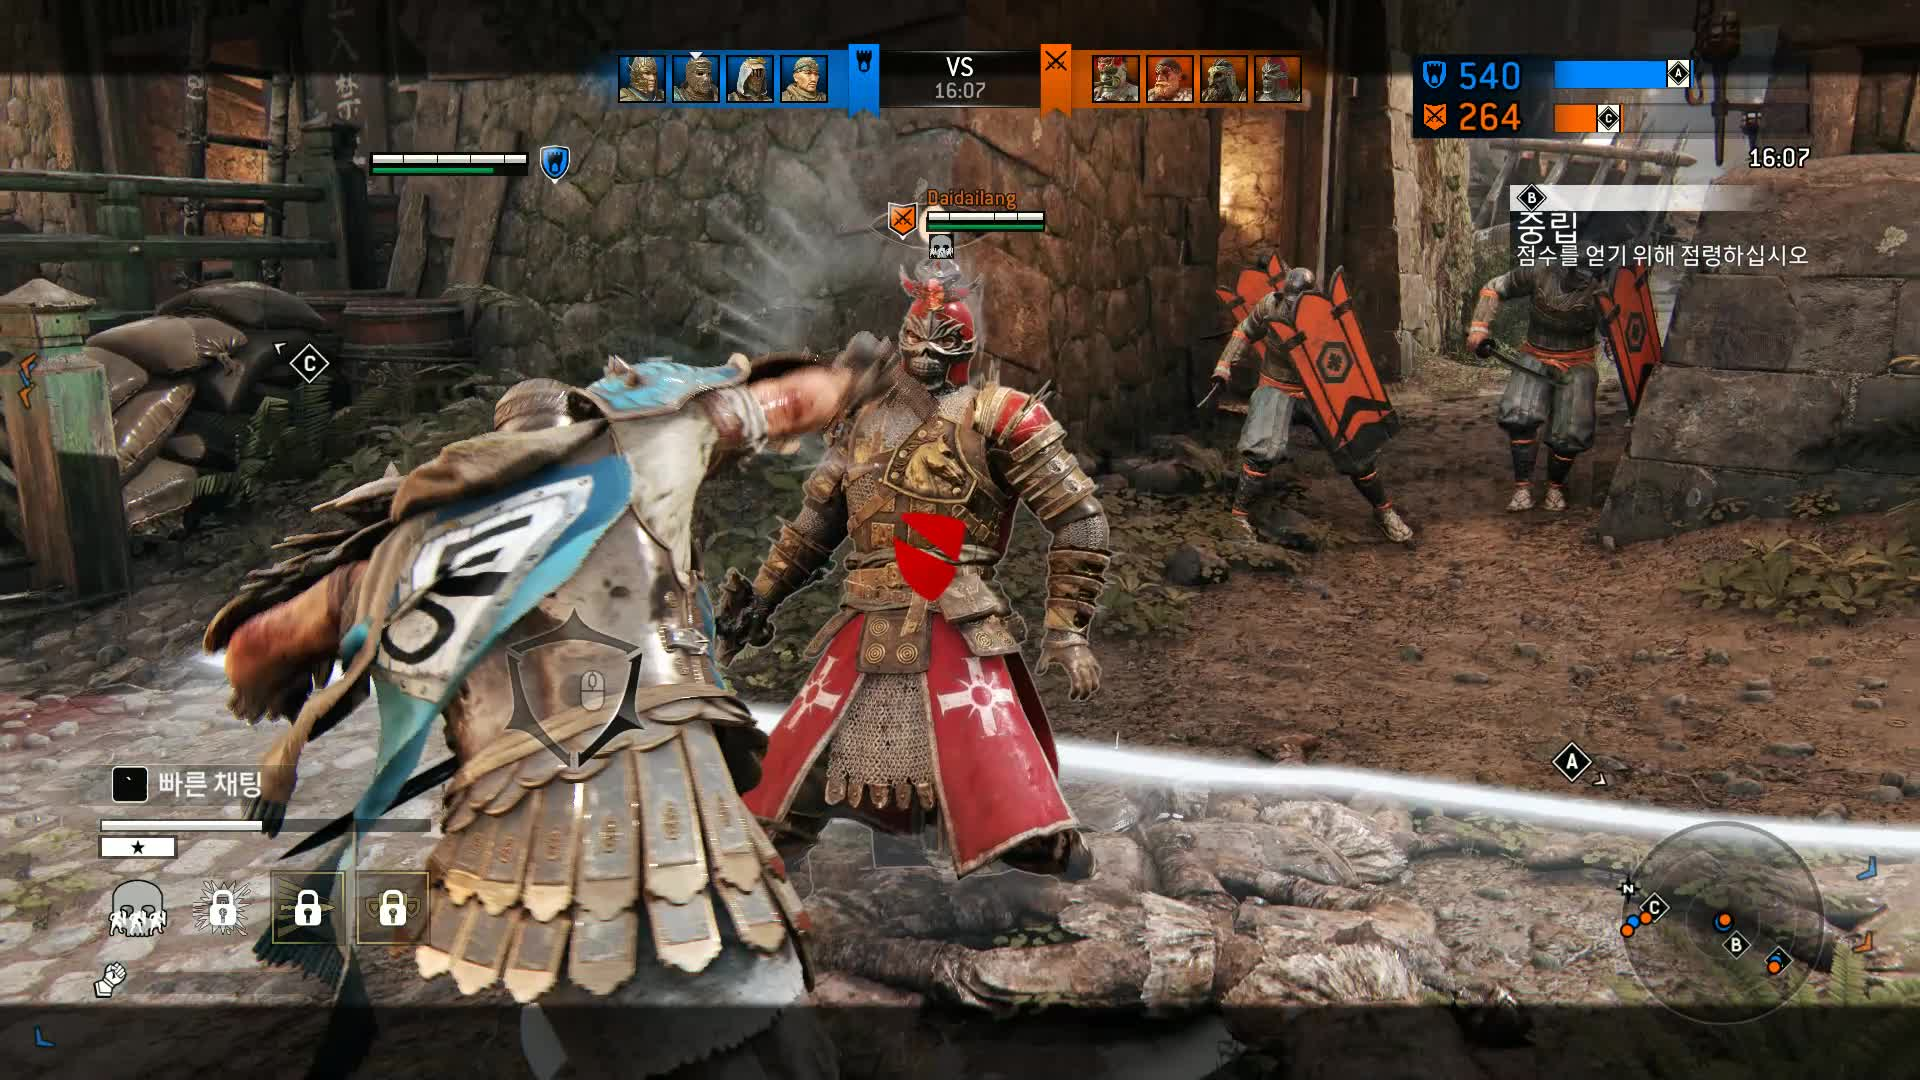 forhonor, For Honor 2019.04.09 - 20.18.23.03.DVR GIFs